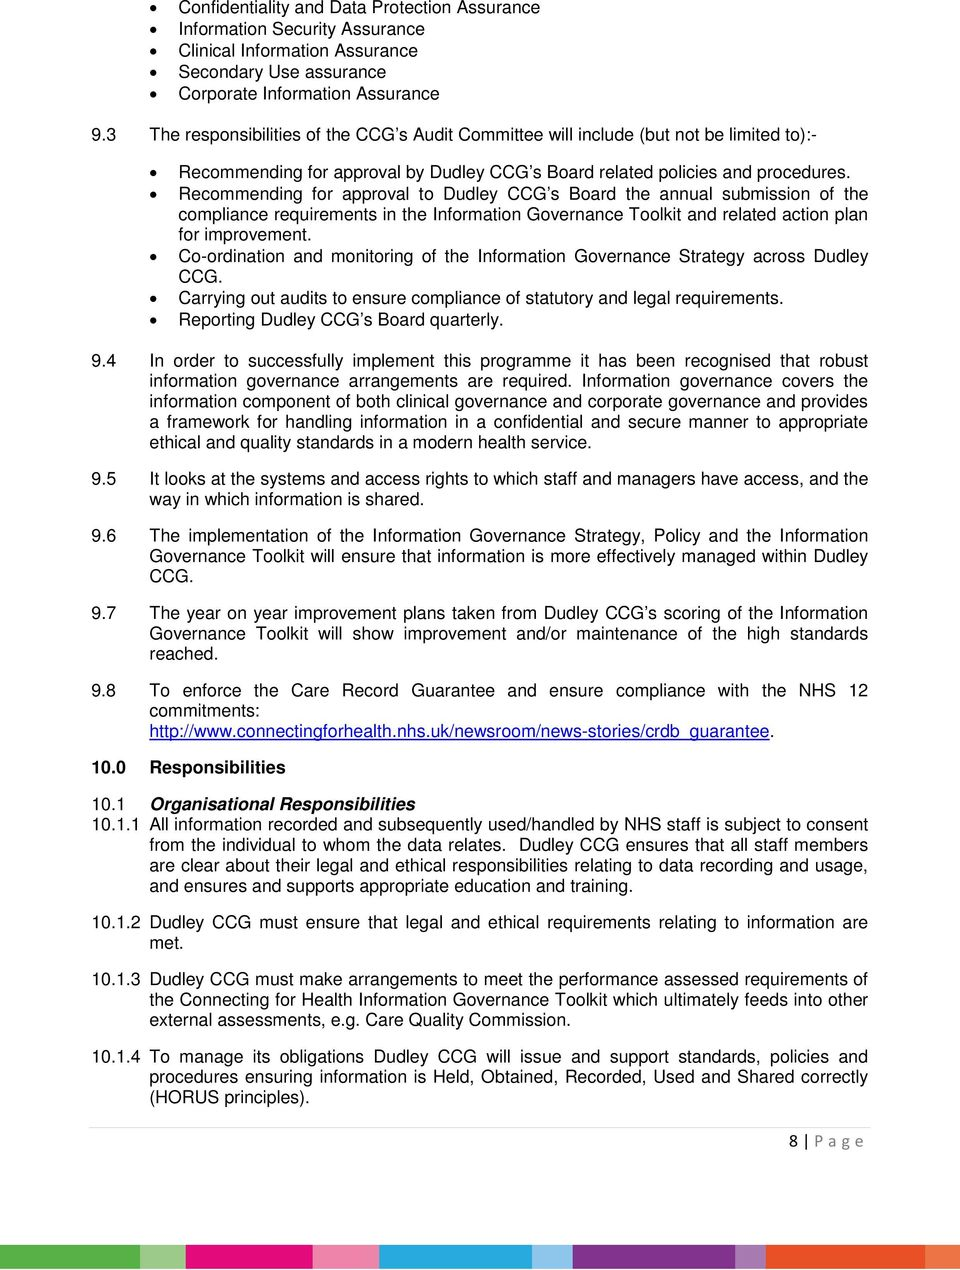 Recommending for approval to Dudley CCG s Board the annual submission of the compliance requirements in the Information Governance Toolkit and related action plan for improvement.